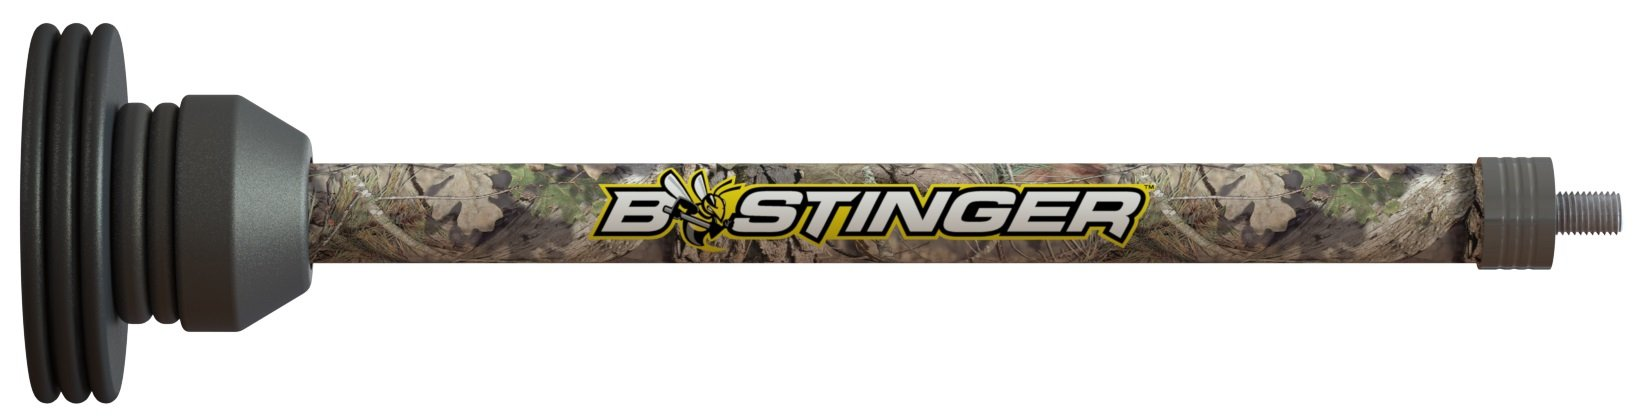 Bee Stinger Pro Hunter PHMN10BC MAXX Stabilizer 10''/Break-Up Country